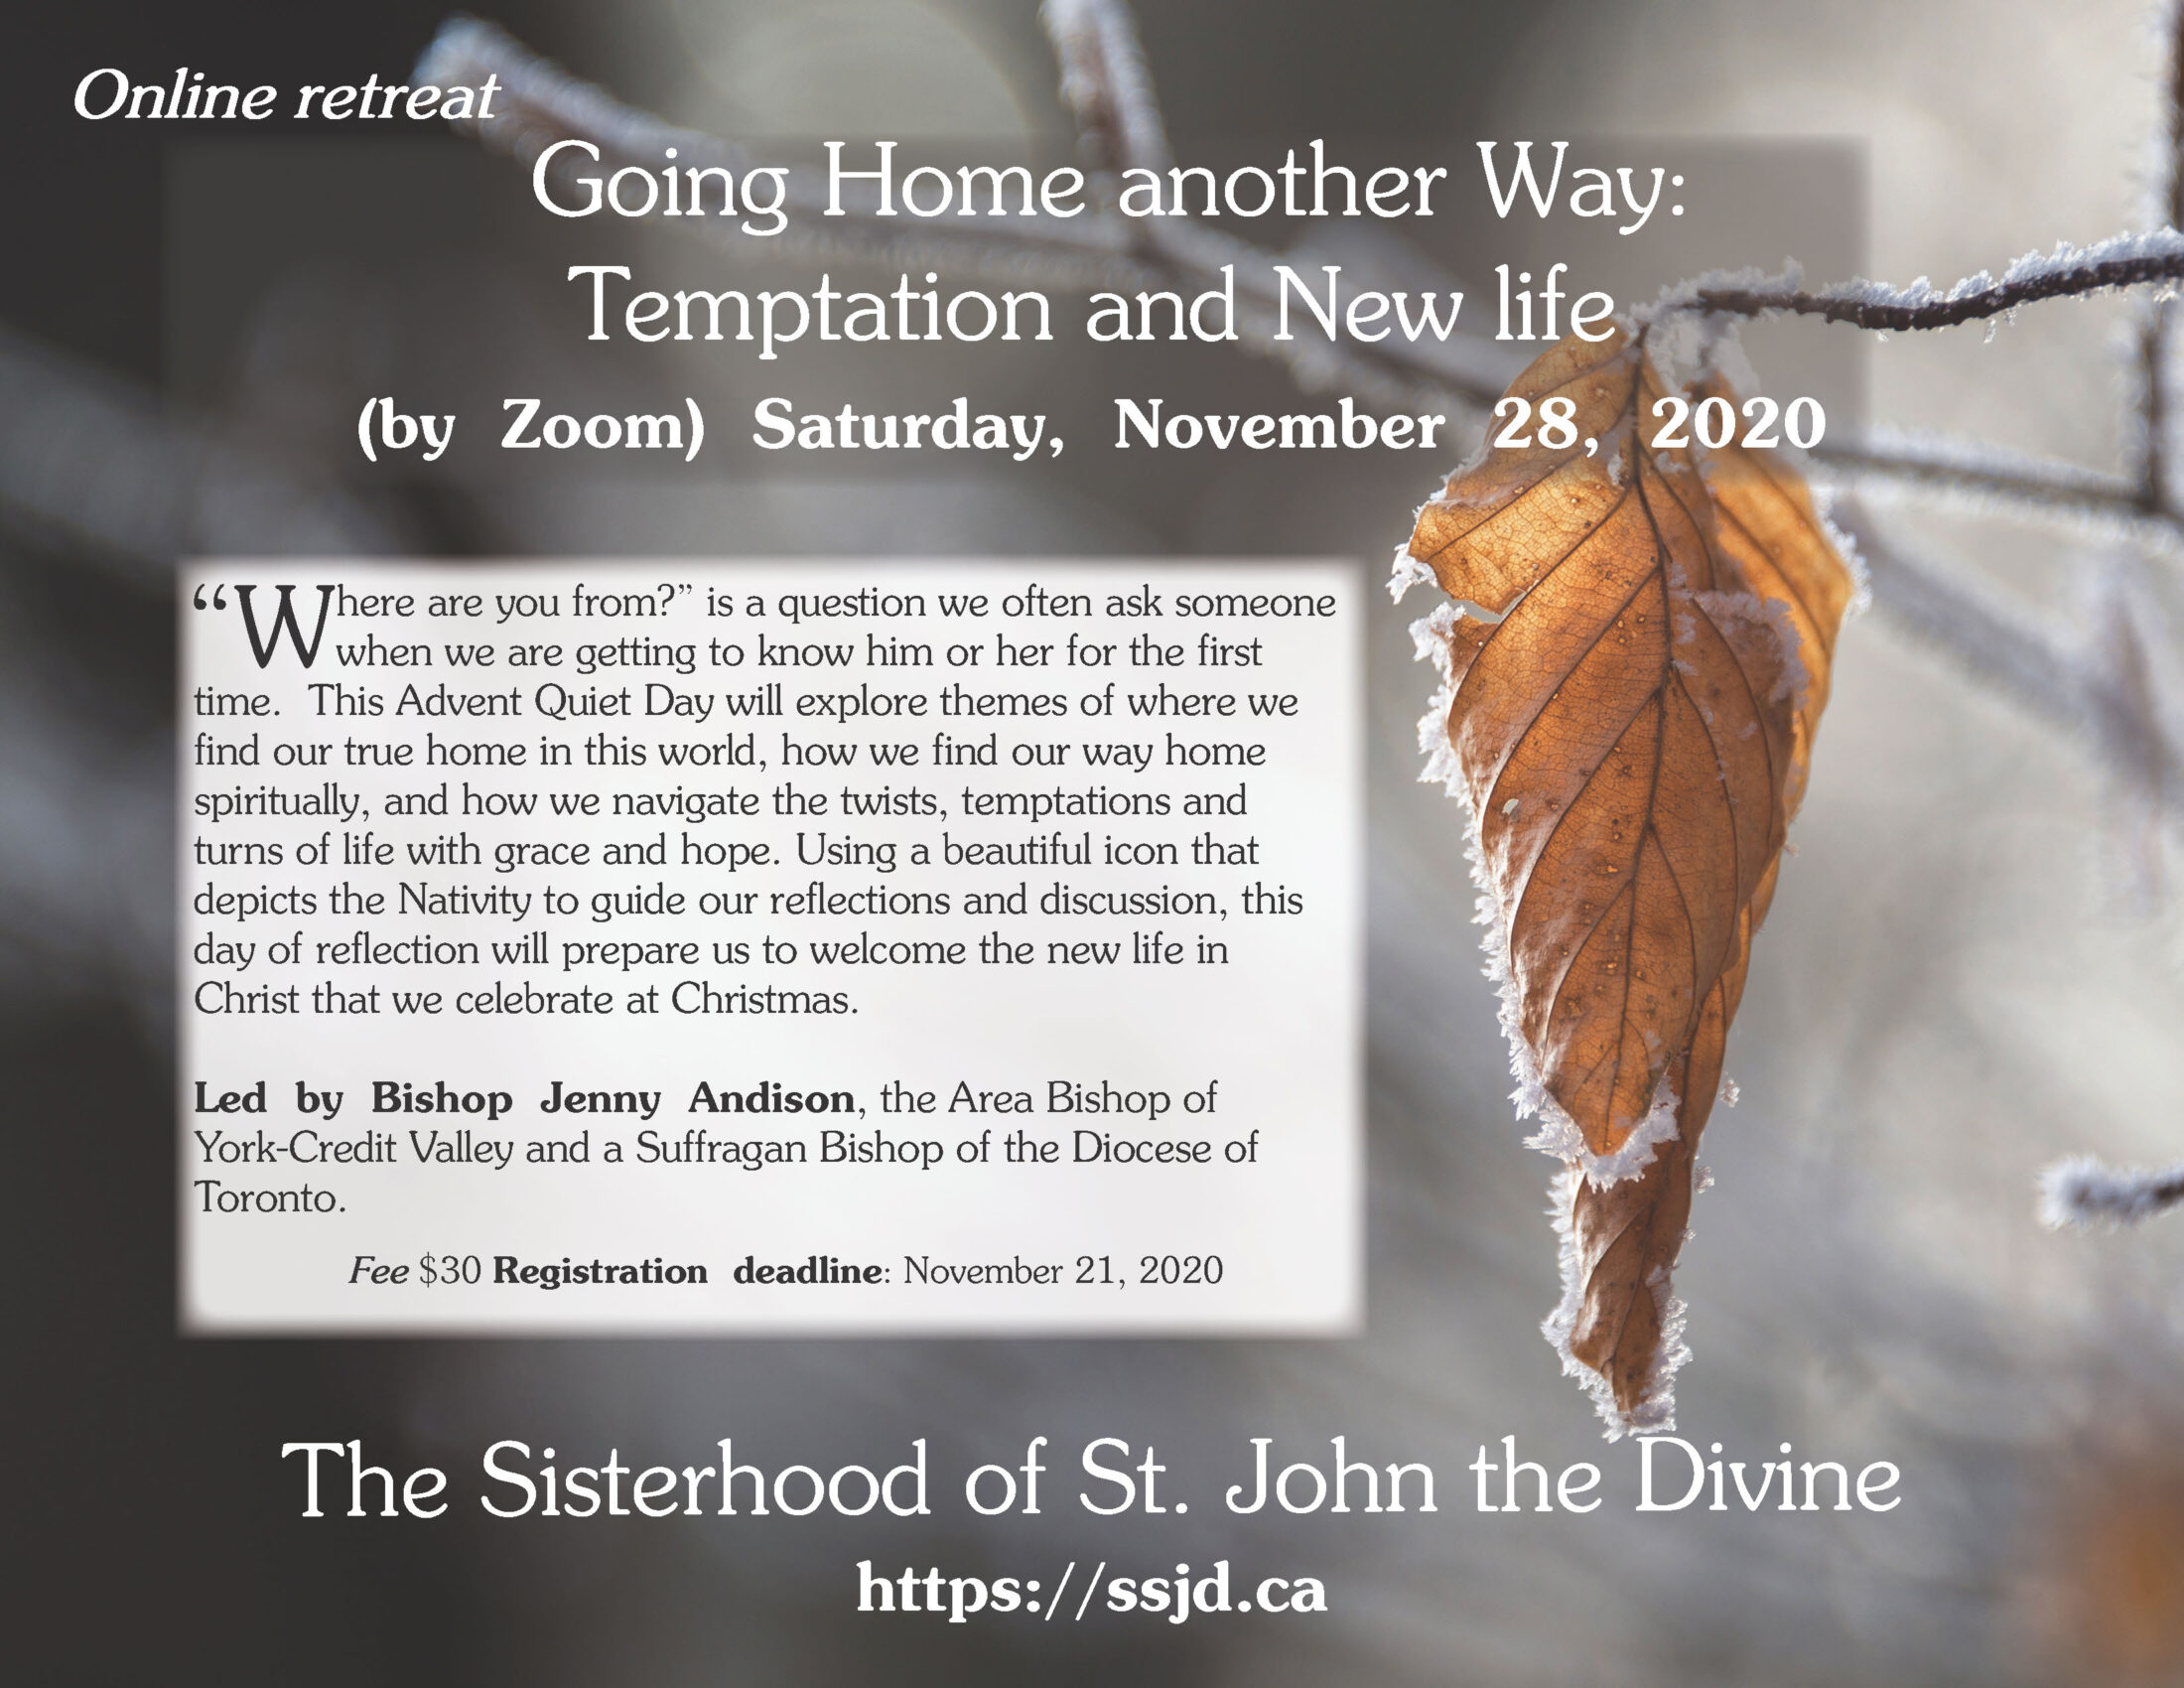 Going Home Another Way: Temptation And New Life